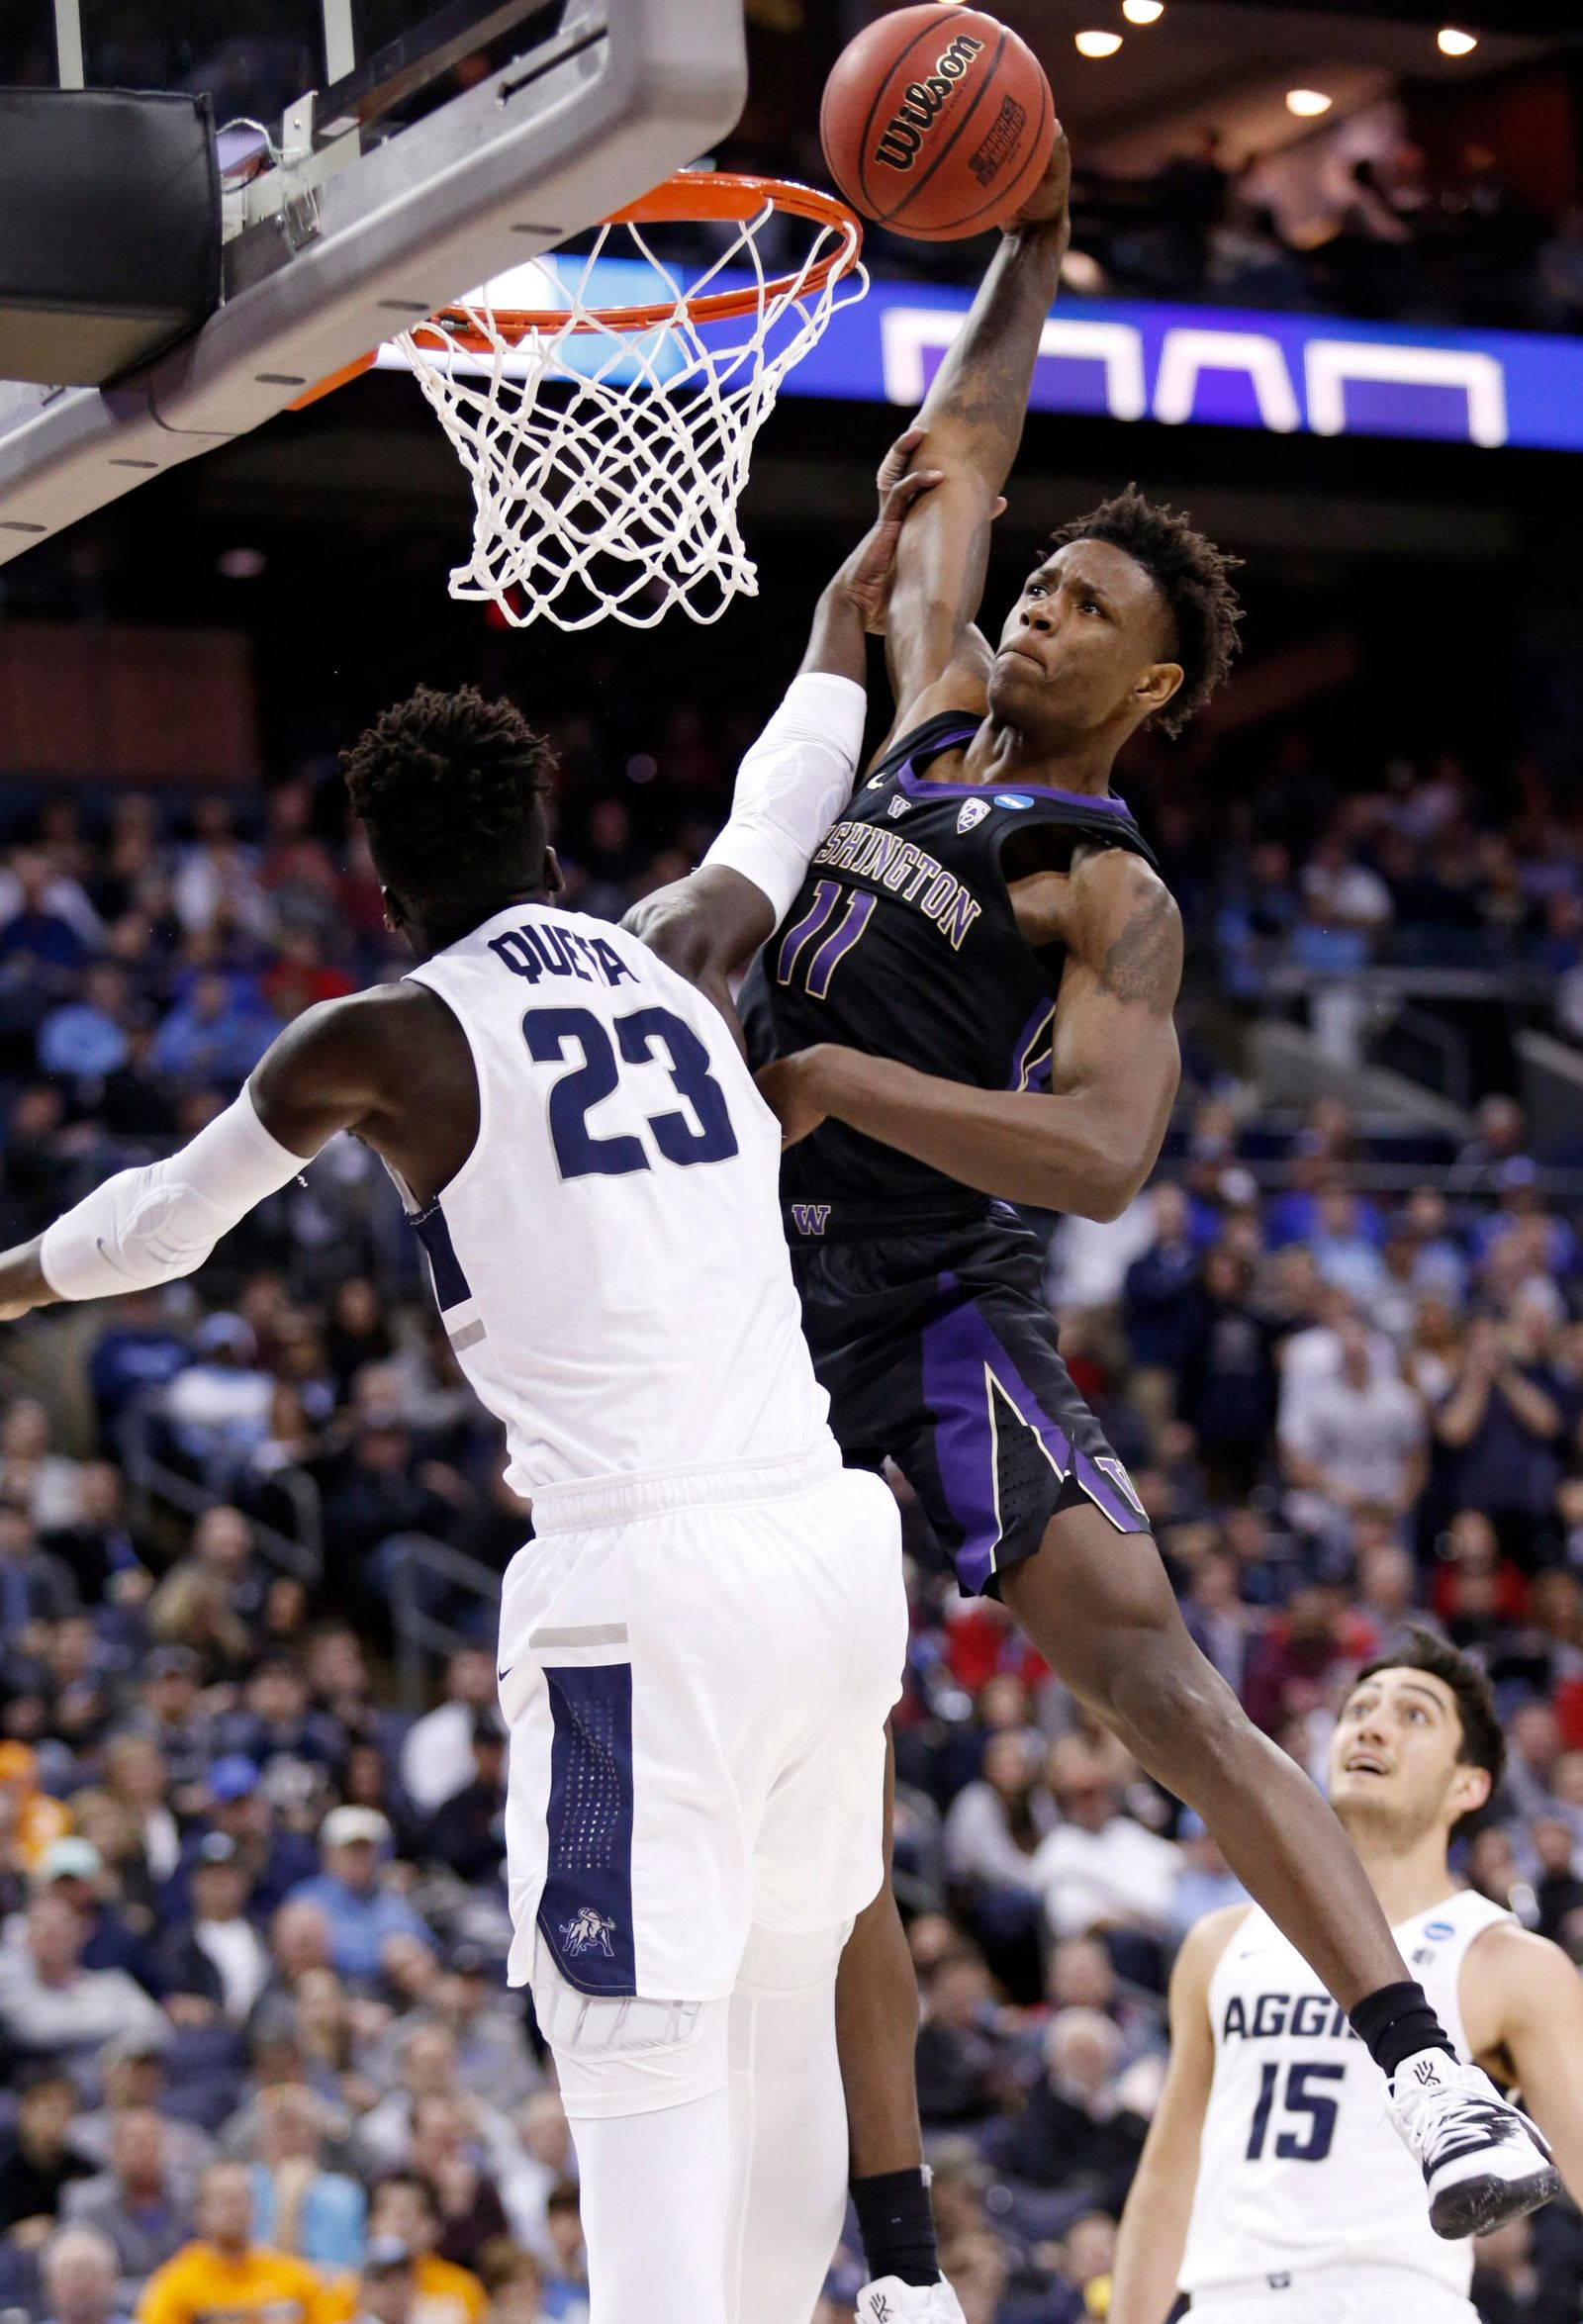 Washington's Nahziah Carter (11) dunks over Utah State's Neemias Queta (23) in the second half during a first round men's college basketball game in the NCAA Tournament in Columbus, Ohio, Friday, March 22, 2019. (AP Photo/Paul Vernon)